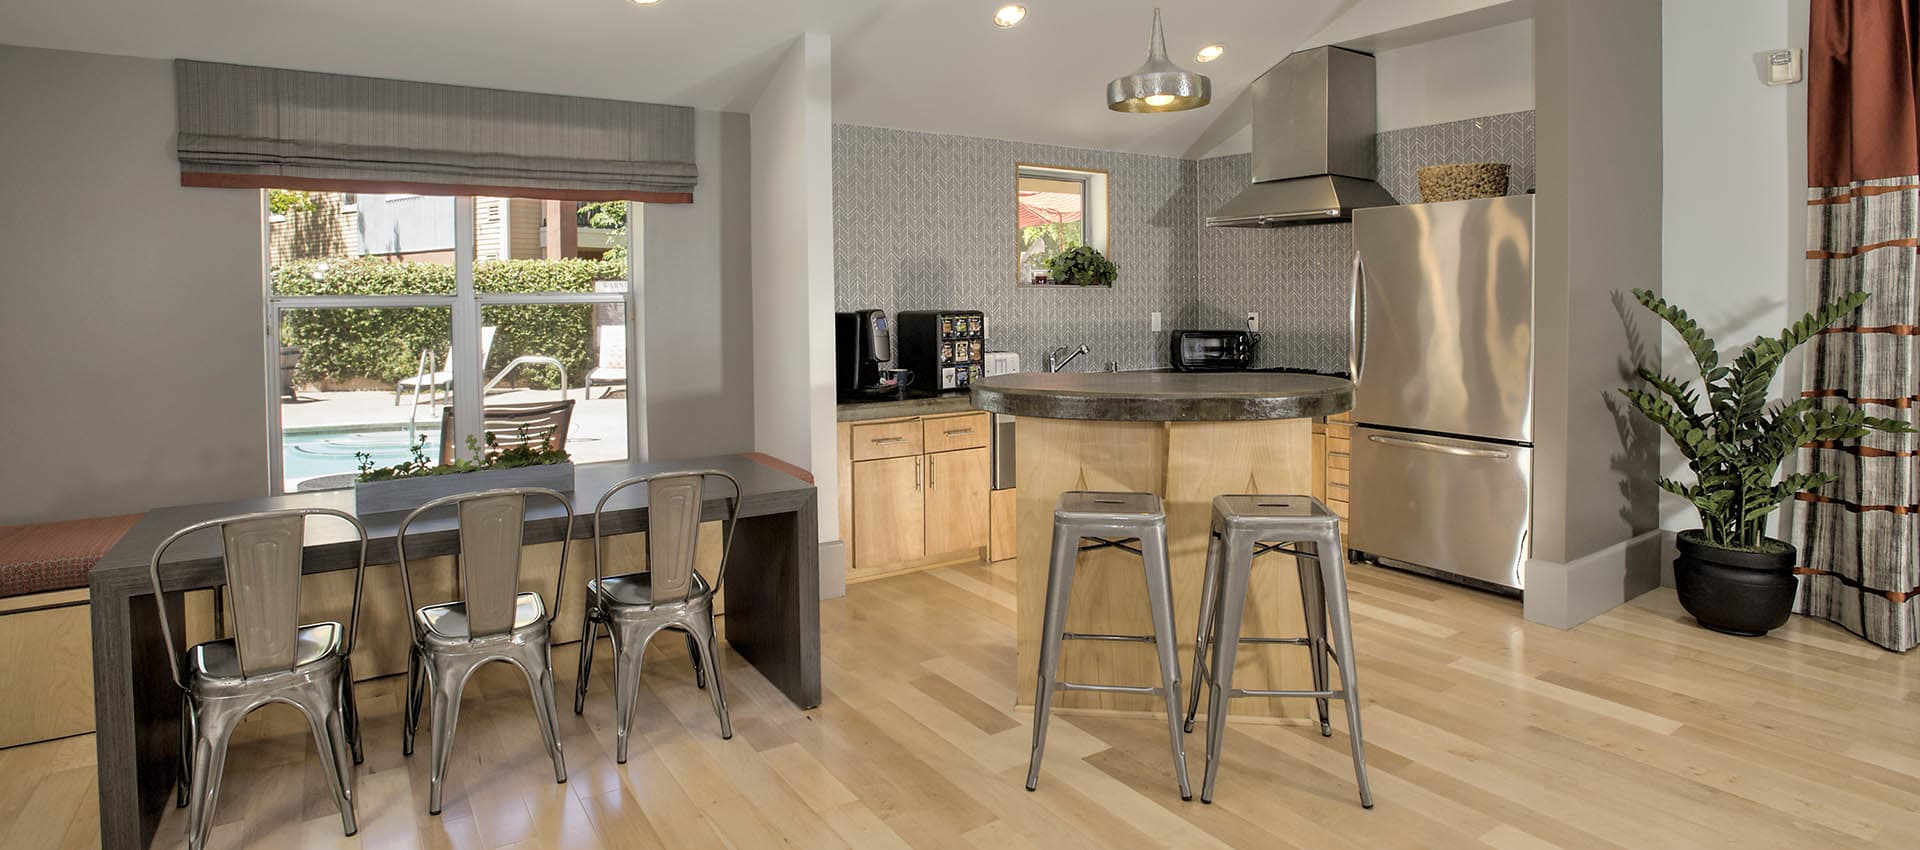 Modern Industrial Chairs And Stools In The Clubhouse at Azure Apartment Homes in Petaluma, California